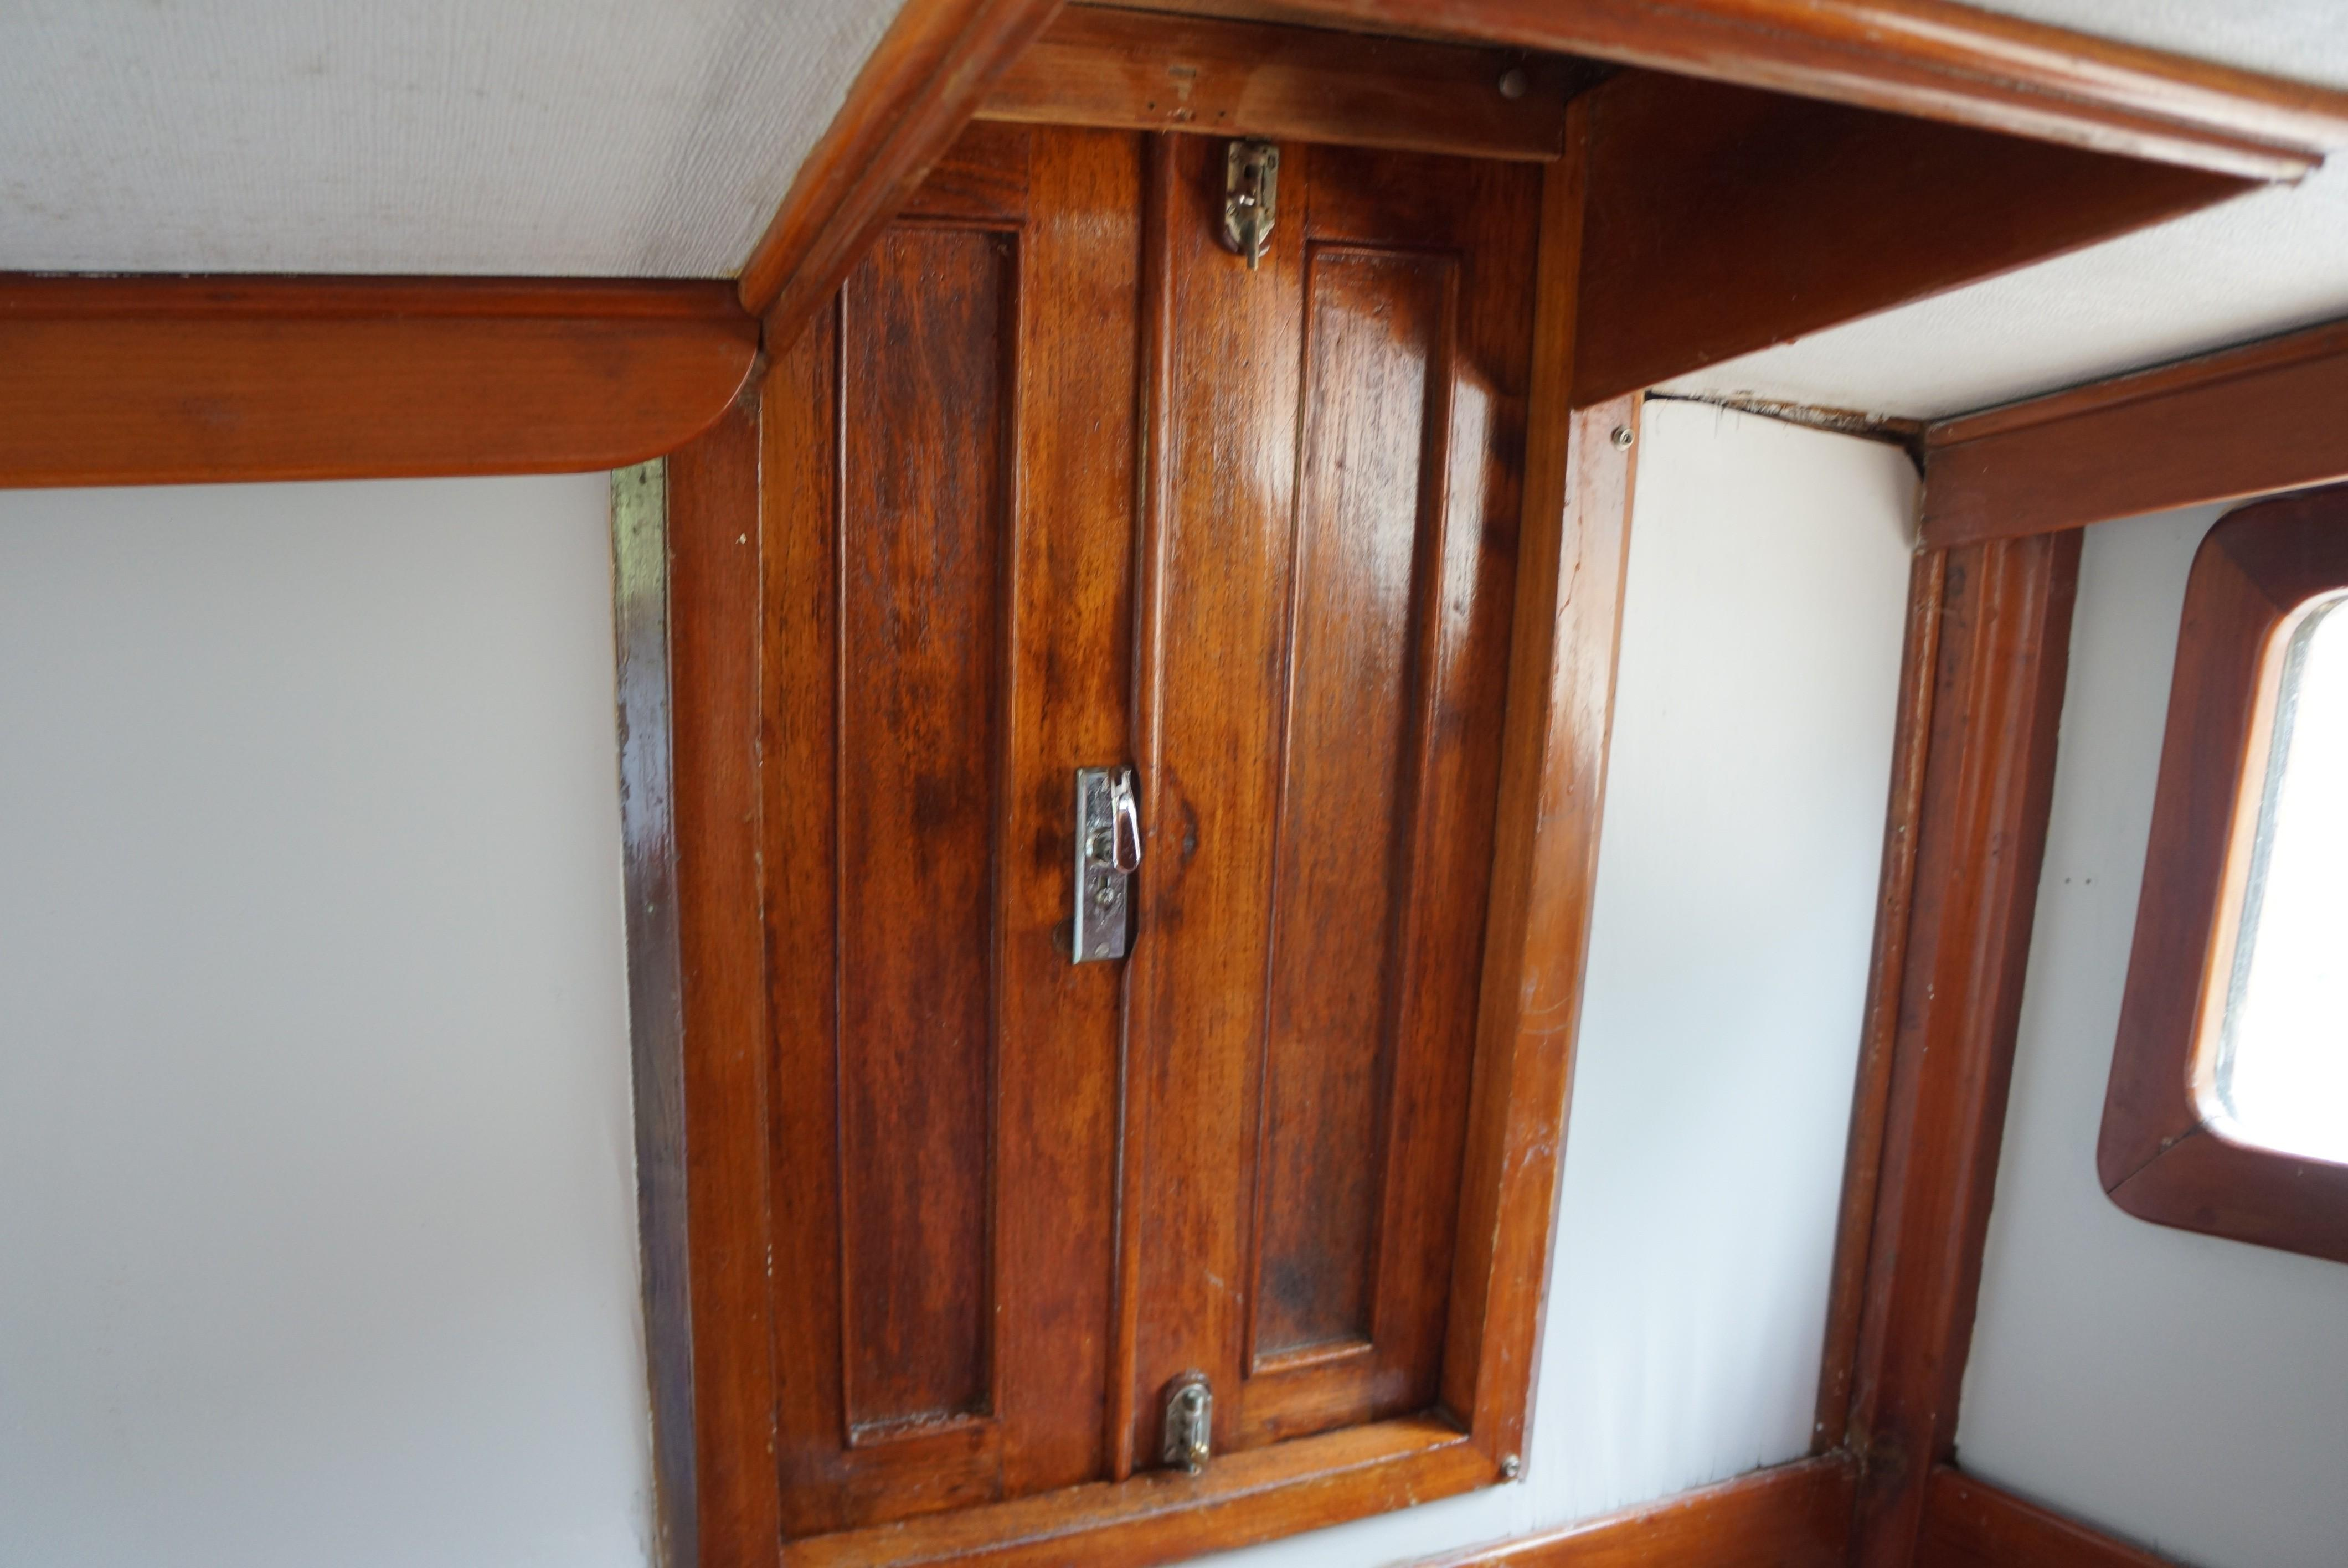 Marine Trader 34 Double Cabin - 34 Marine Trader Access Door to Aft Cabin